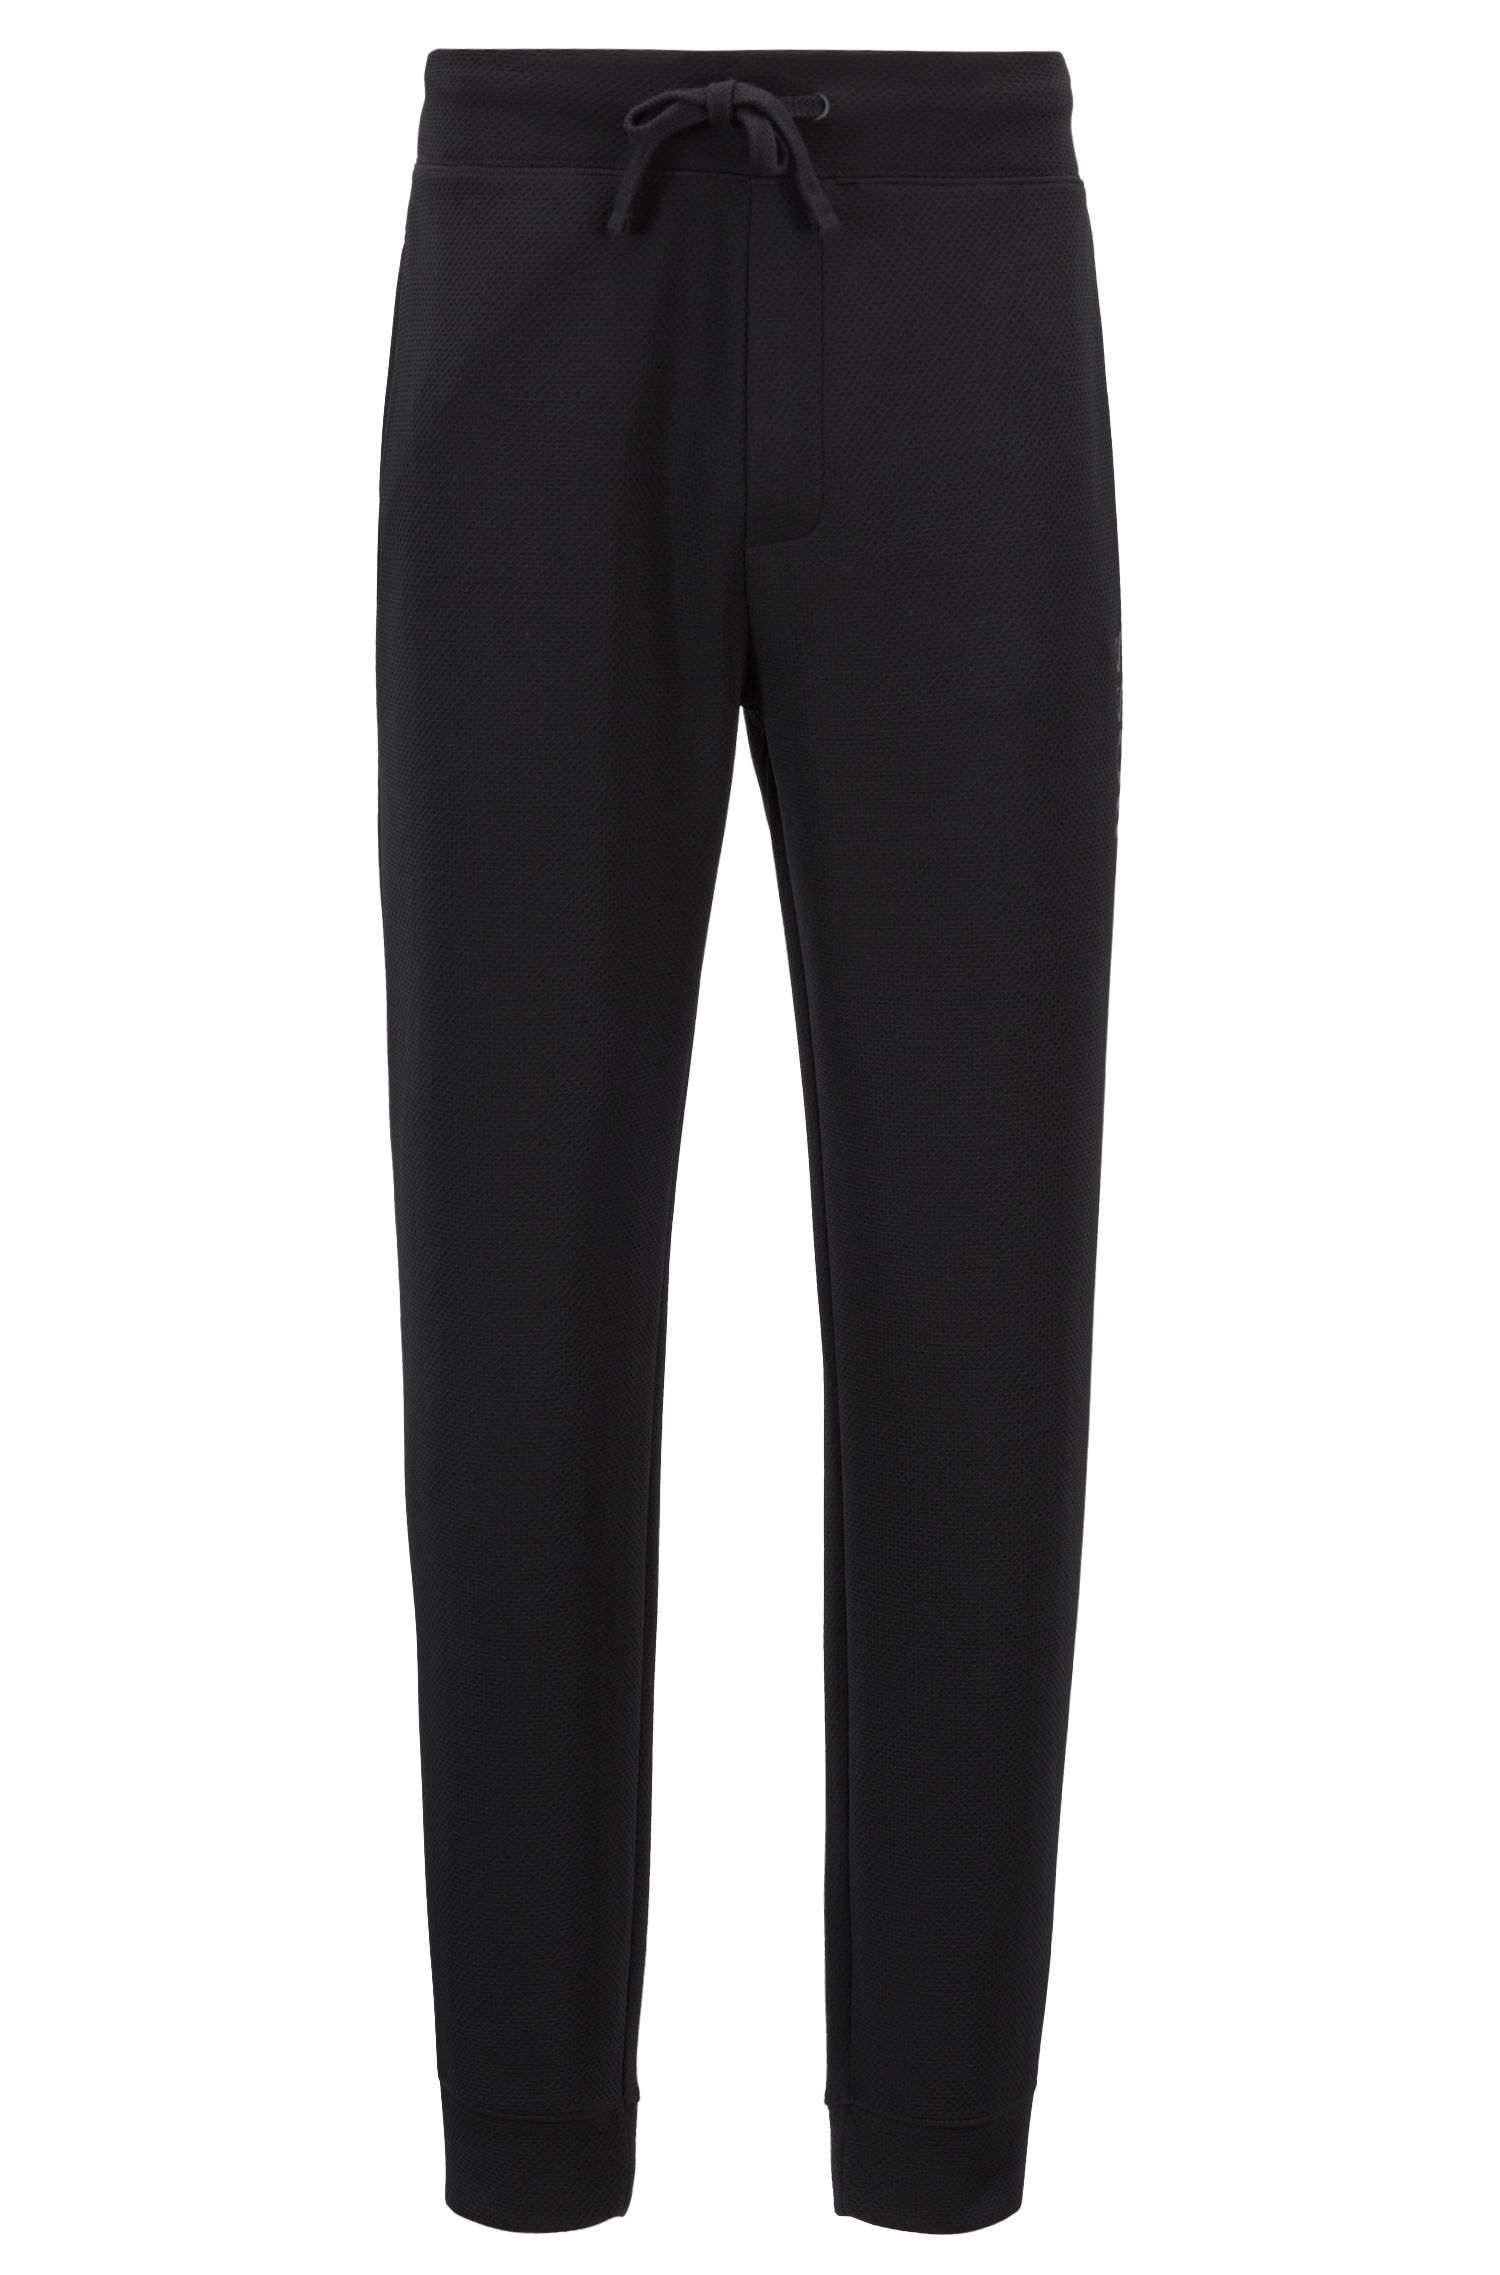 Cuffed loungewear trousers in piqué fabric, Black